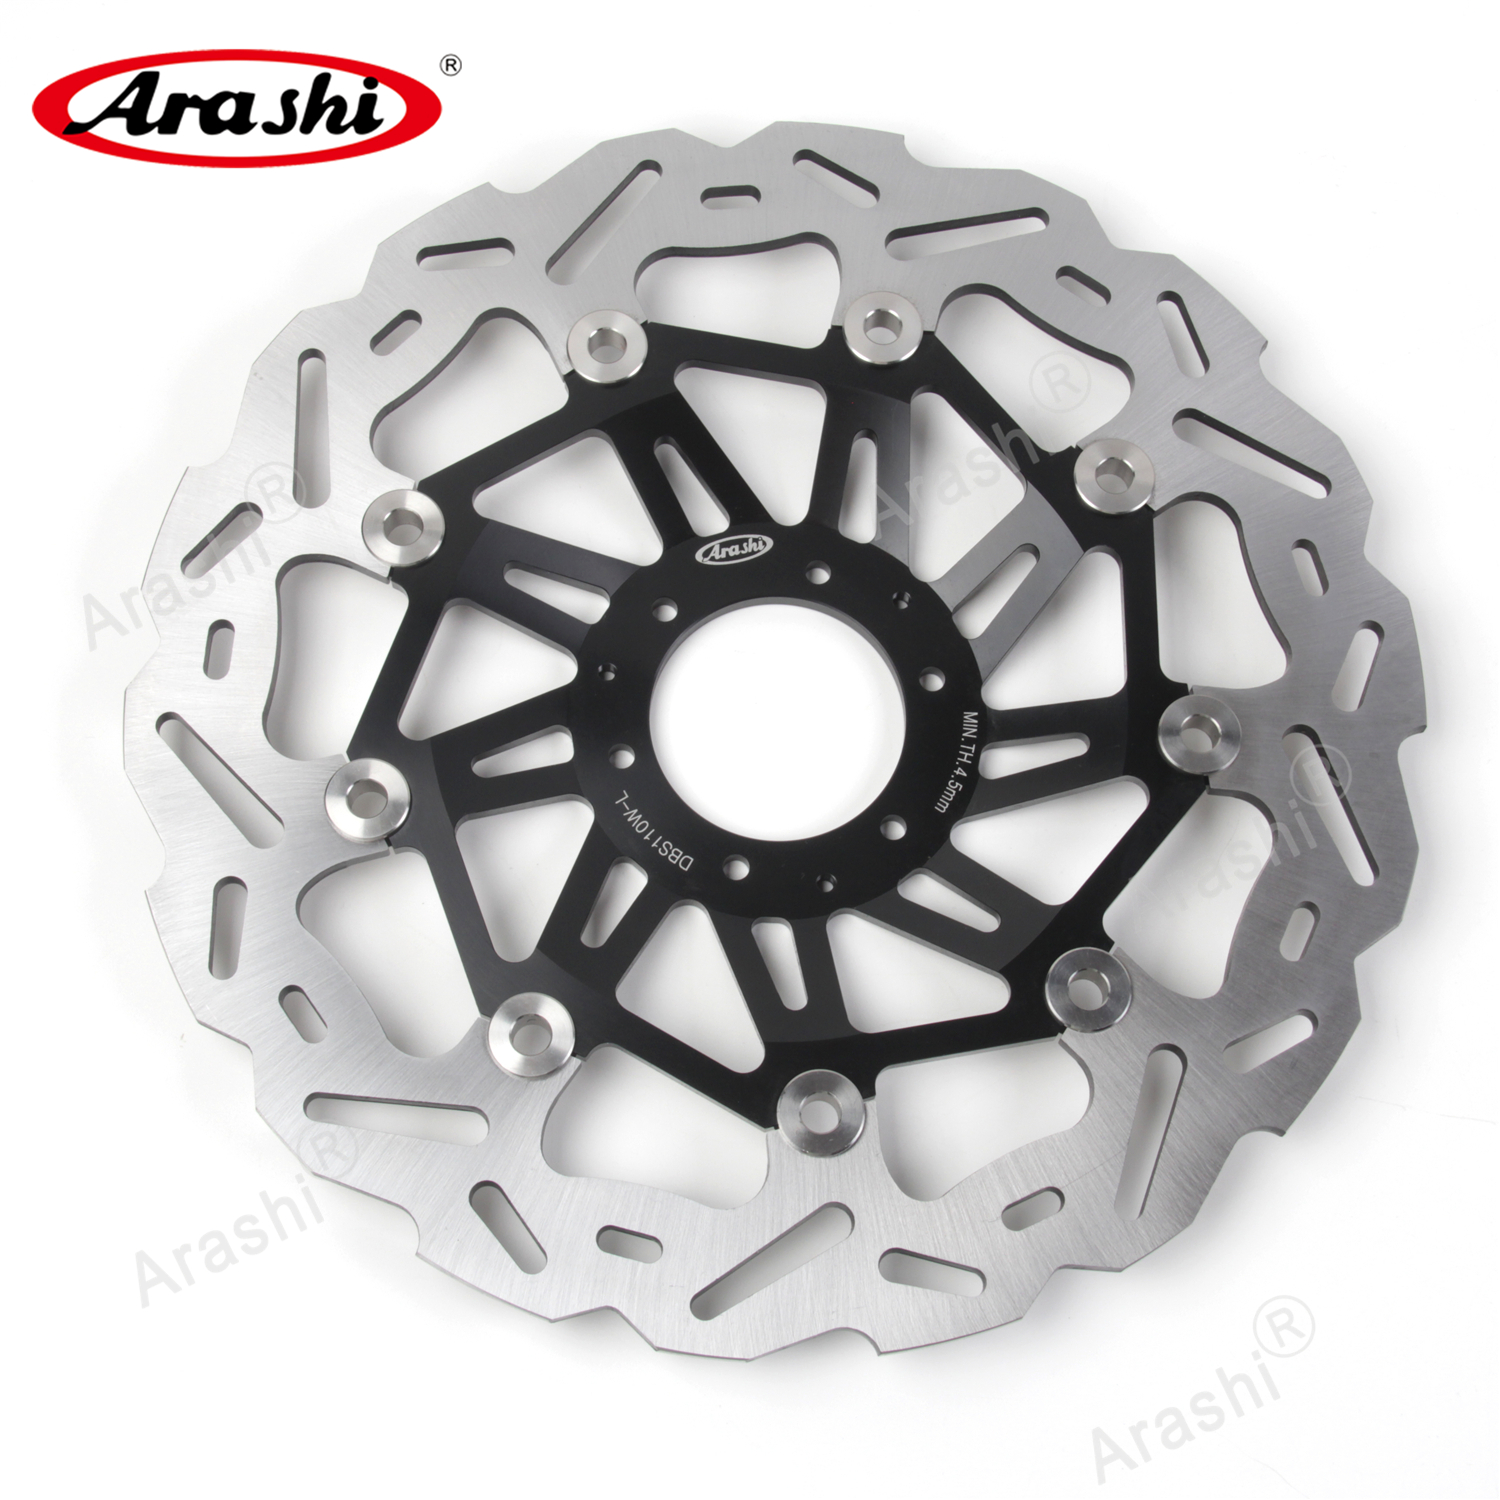 CRF1000 L AFRICA TWIN ADV ABS/2018-2019 Motorcycle Replacement Accessories CRF 1000L Black Arashi Front Brake Disc Rotors for Honda CRF1000L AFRICA TWIN ABS 2016-2019